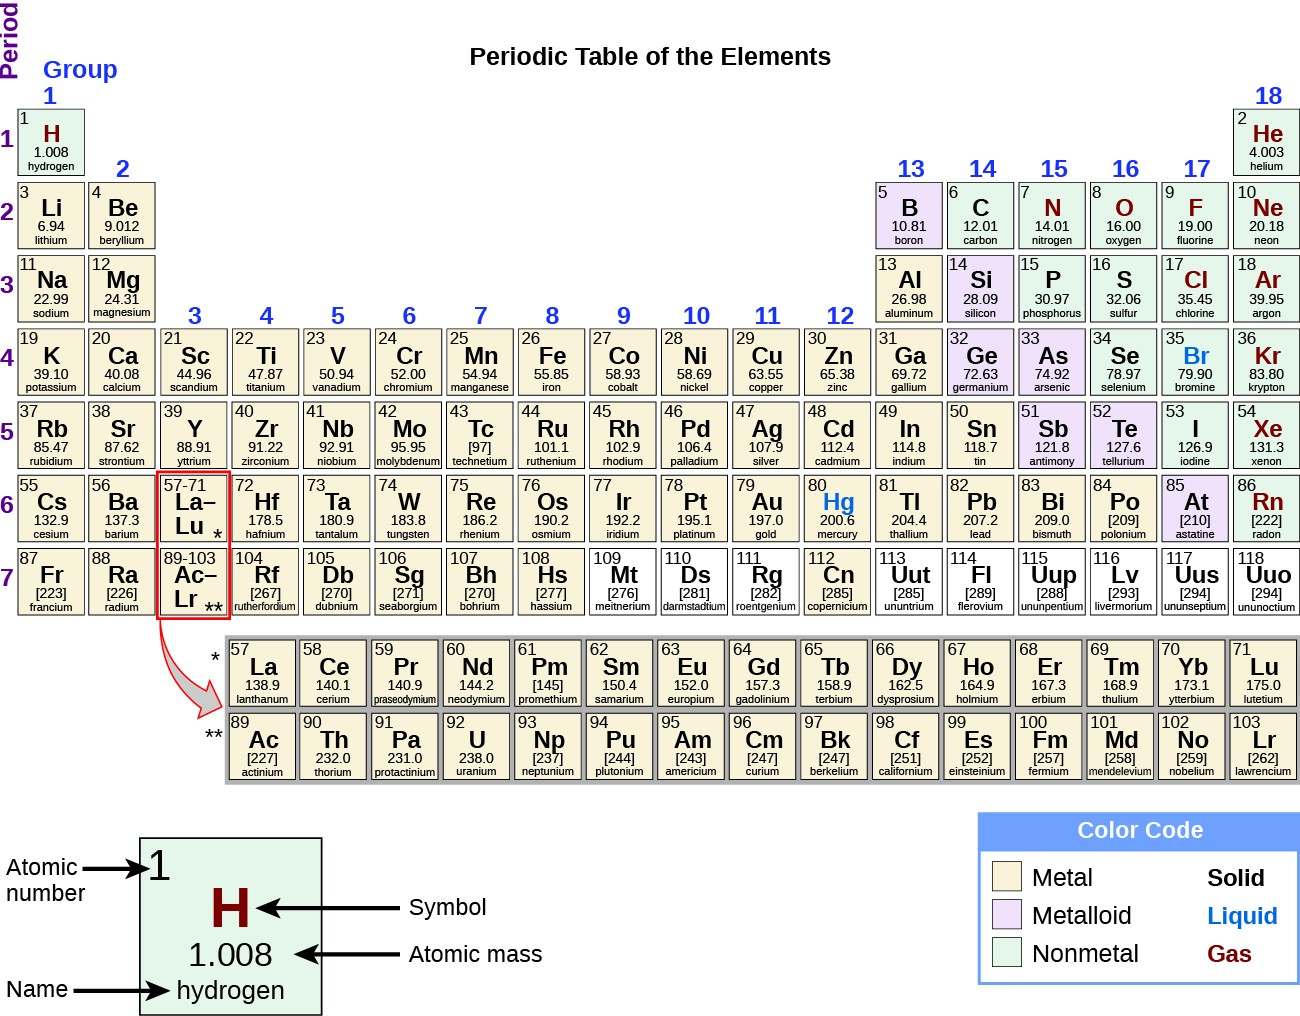 The periodic table chemistry for majors the periodic table of elements is shown the 18 columns are labeled group gamestrikefo Choice Image